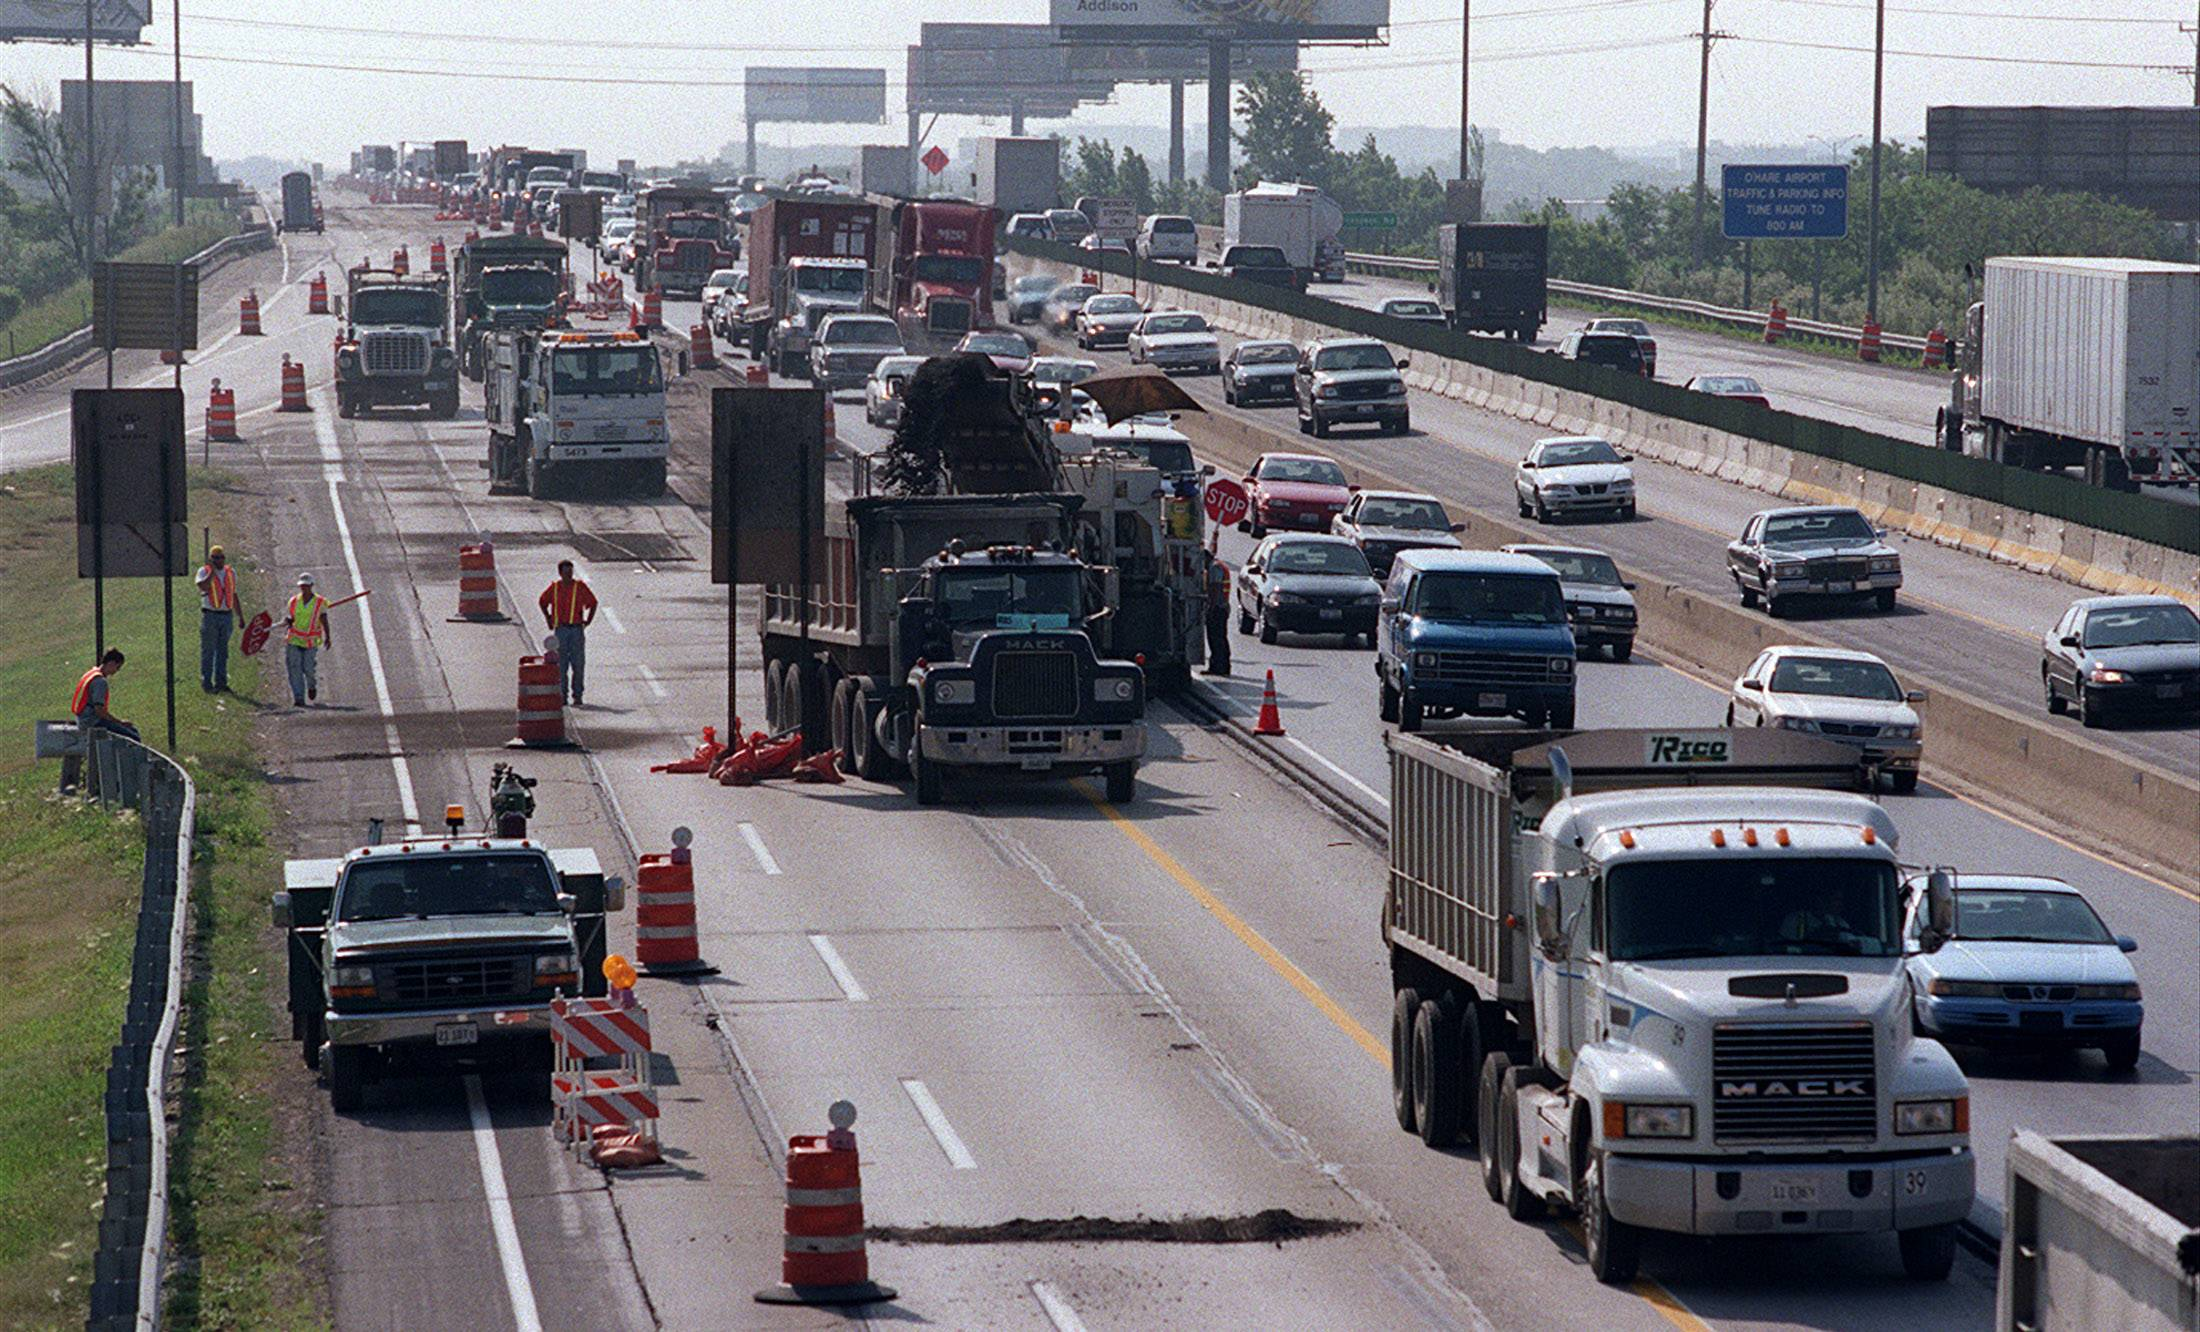 Road construction continues along the Northwest Tollway near the Des Plaines oasis causing continuous traffic backups.